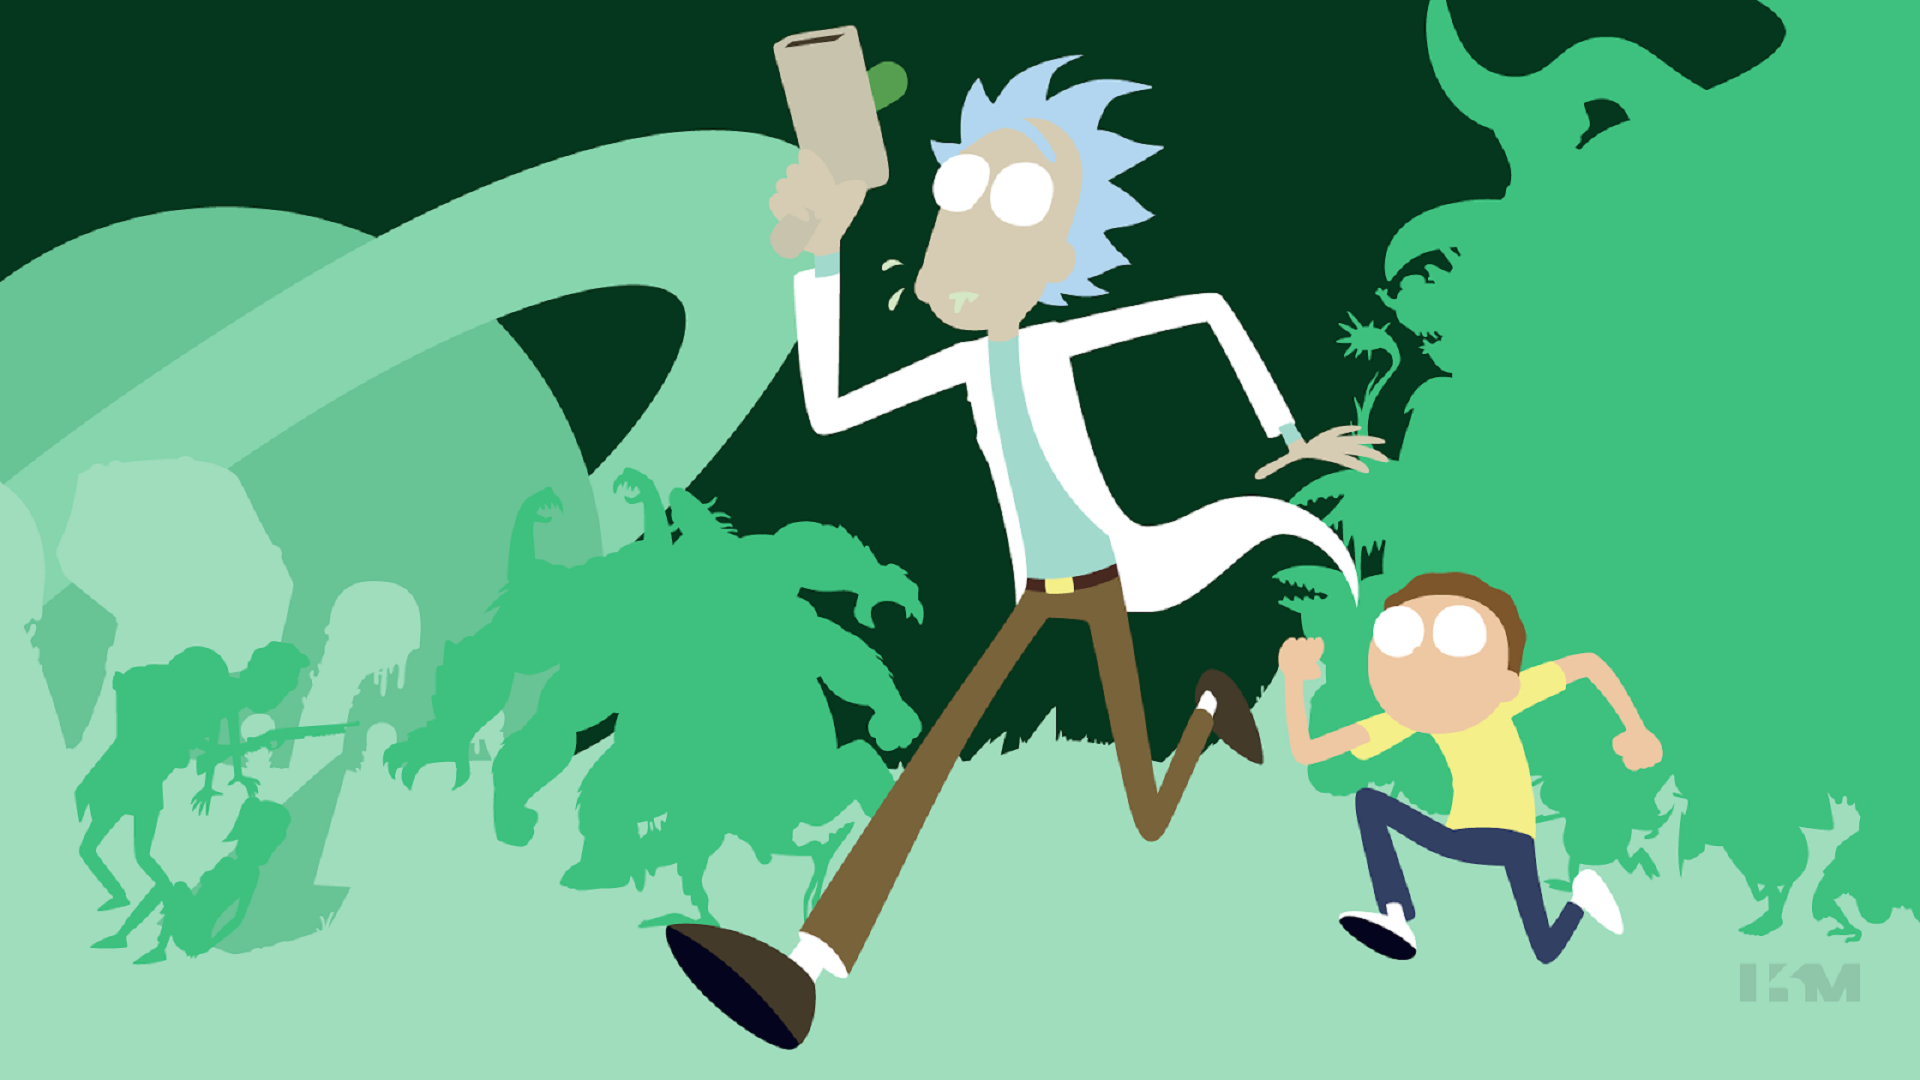 Rick Morty Ps4wallpapers Com